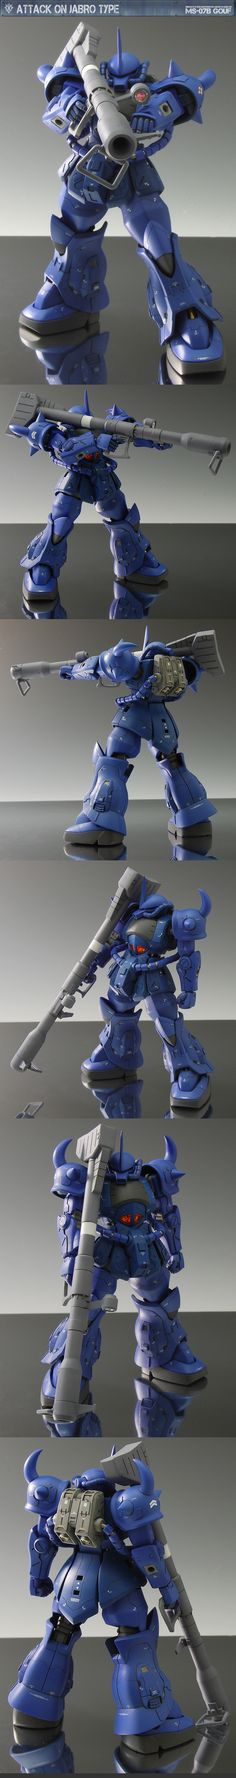 Amazing Remodeling Work! 1/144 GOUF R35 + DODAI YS. Work by STYLE-S Full Photoreview Hi Res Images | GUNJAP